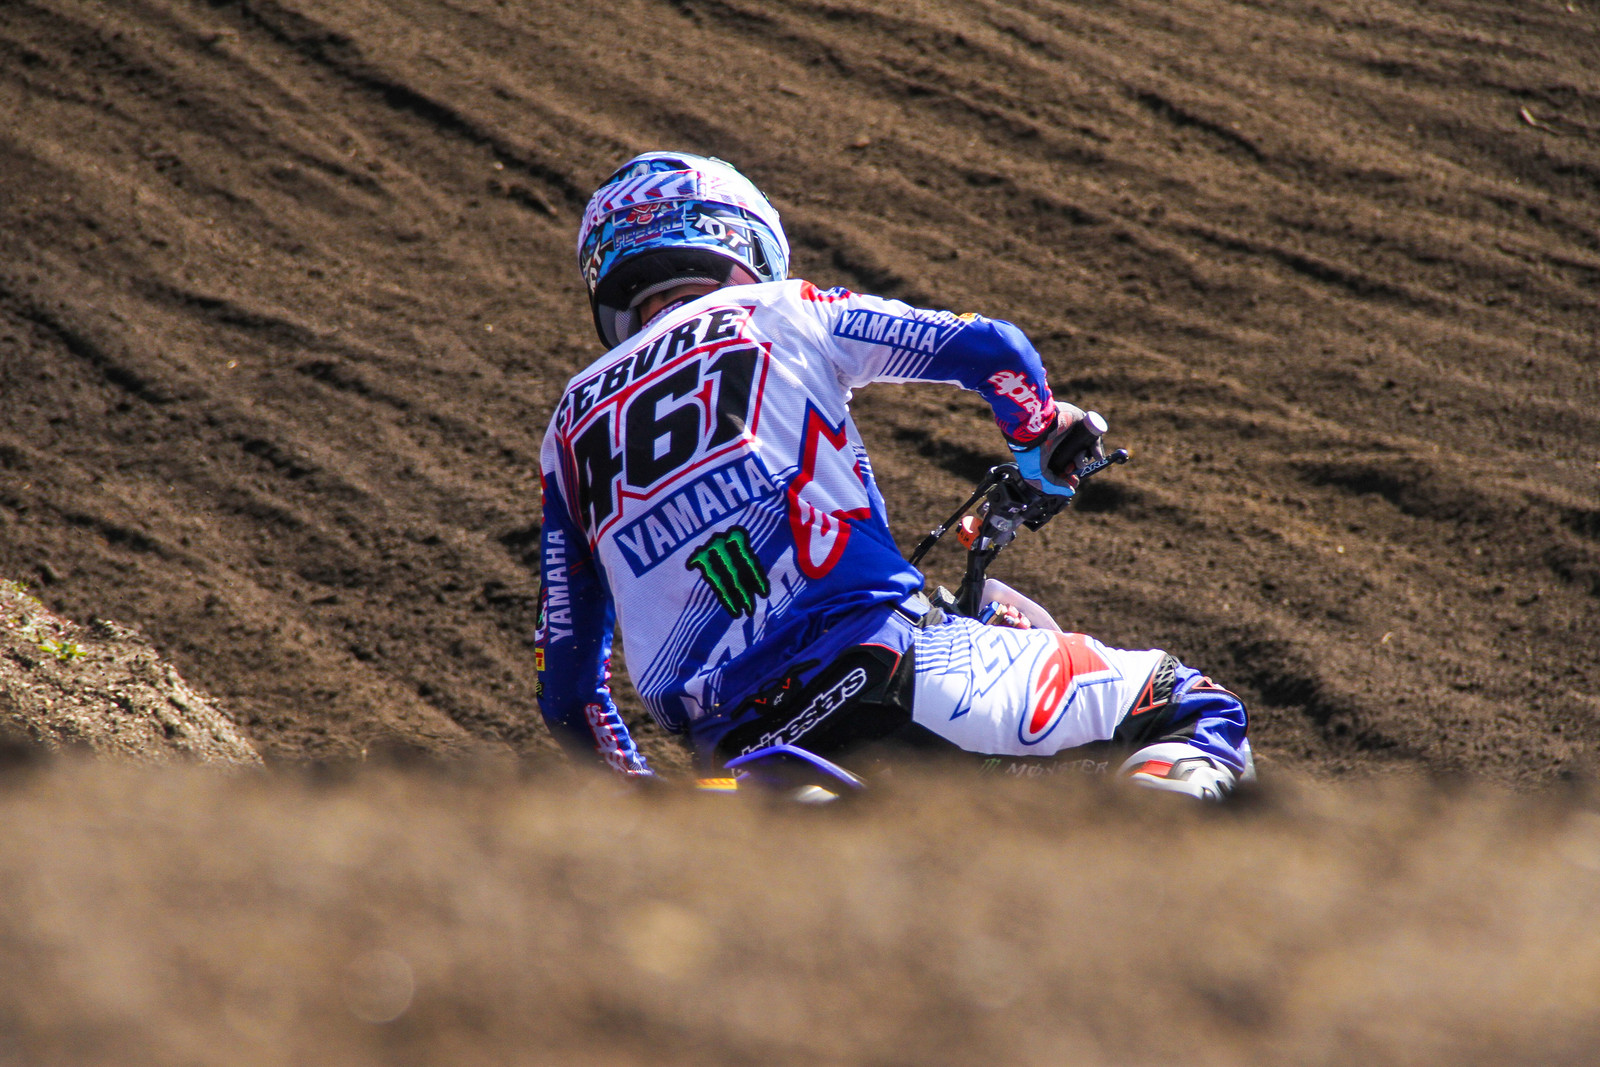 Romain Febvre - Photo Blast: 2017 MXGP of Argentina - Motocross Pictures - Vital MX